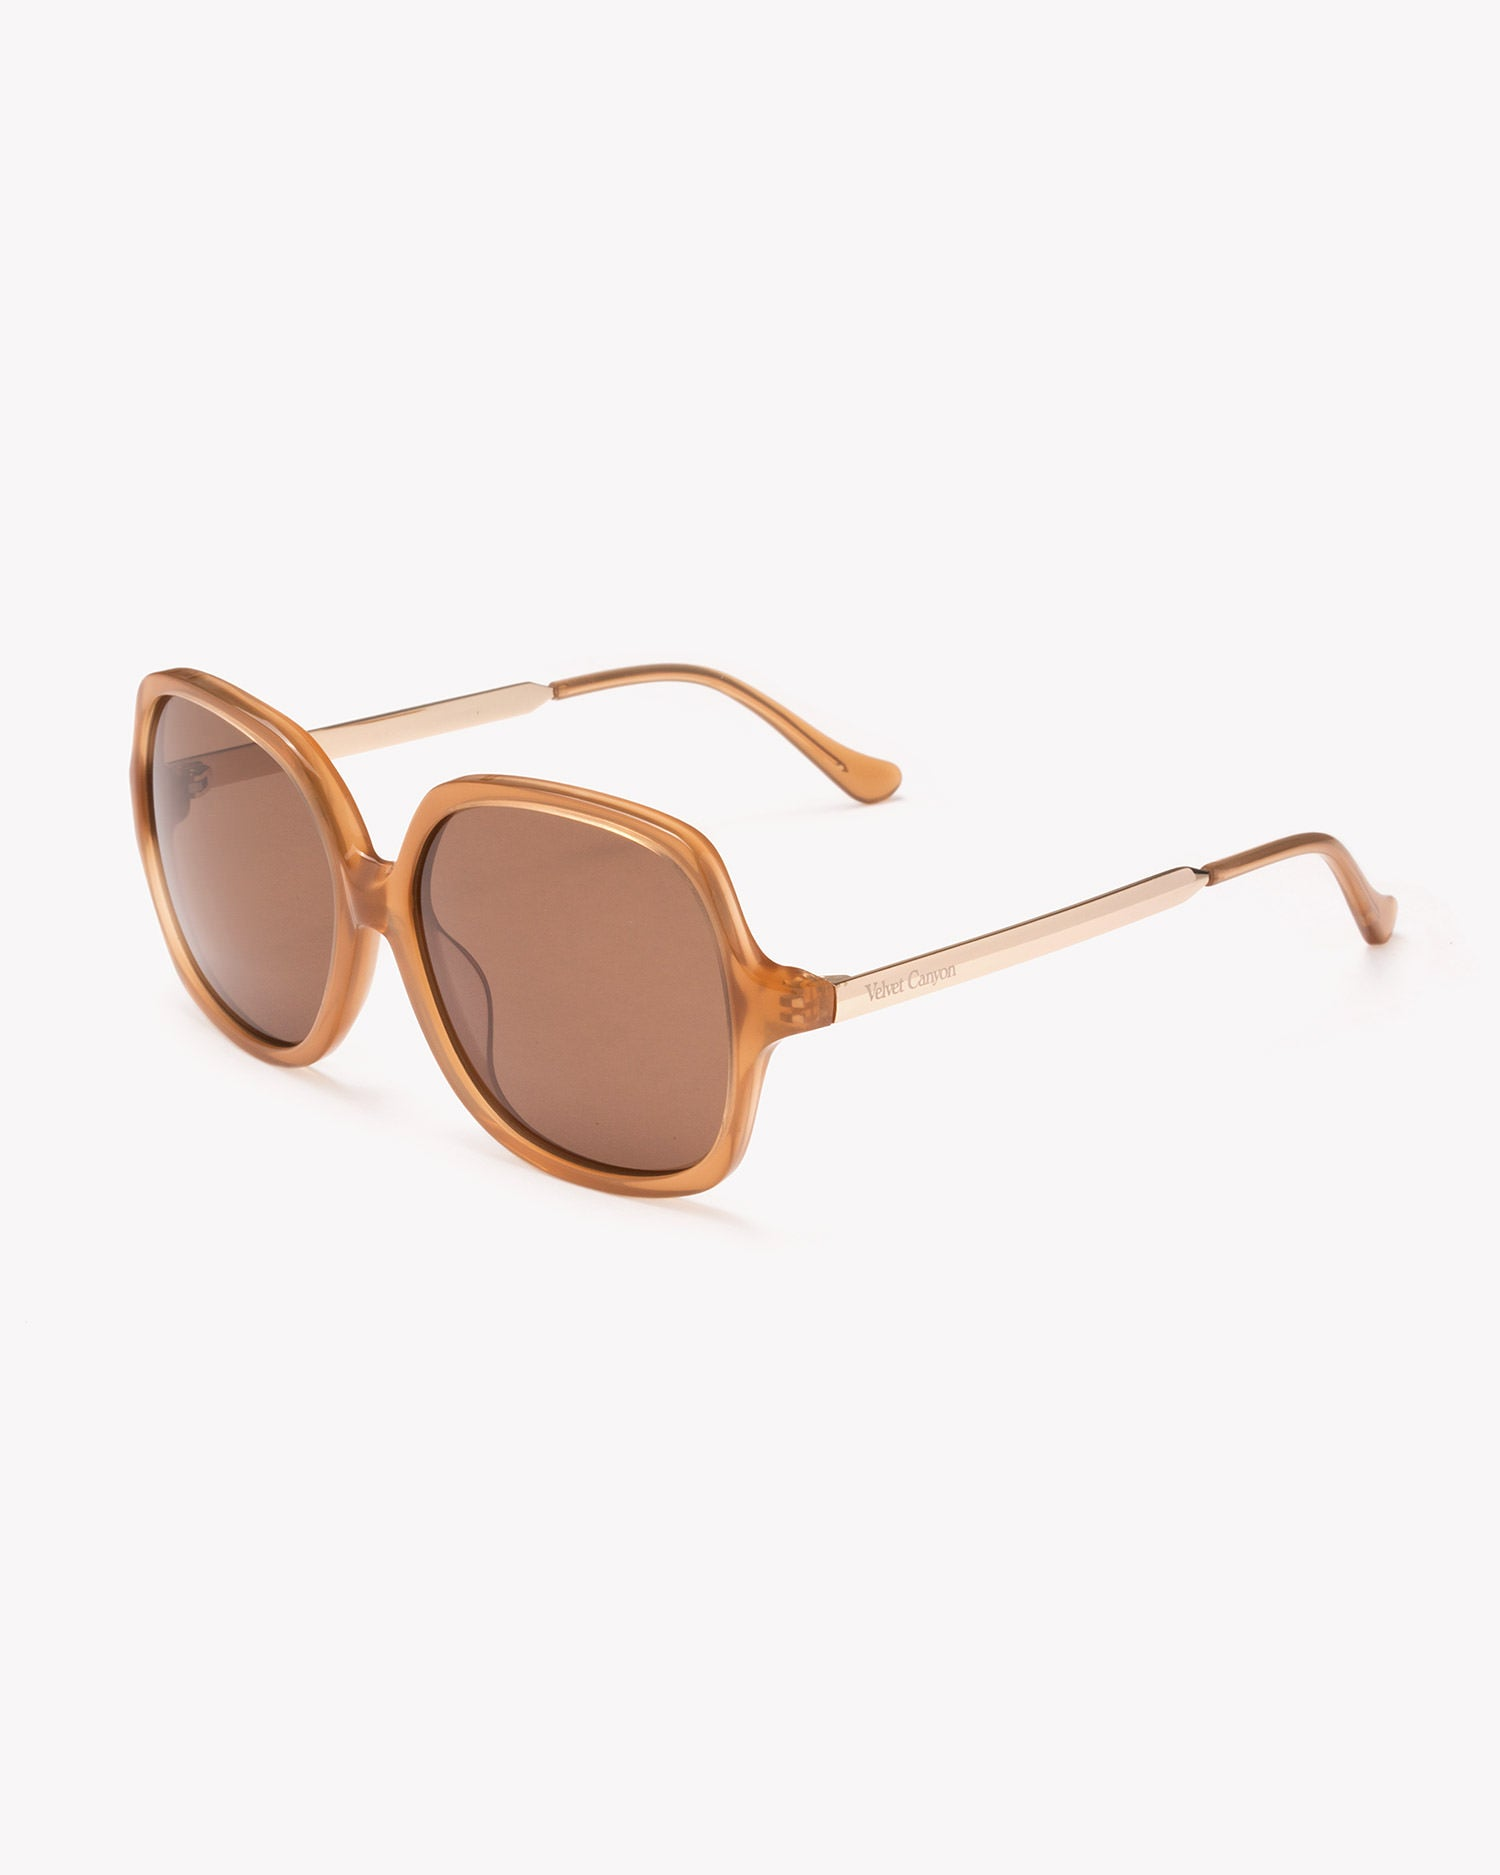 Velvet Canyon 70s vintage inspired sunglasses, Lucky Sevens Toffee